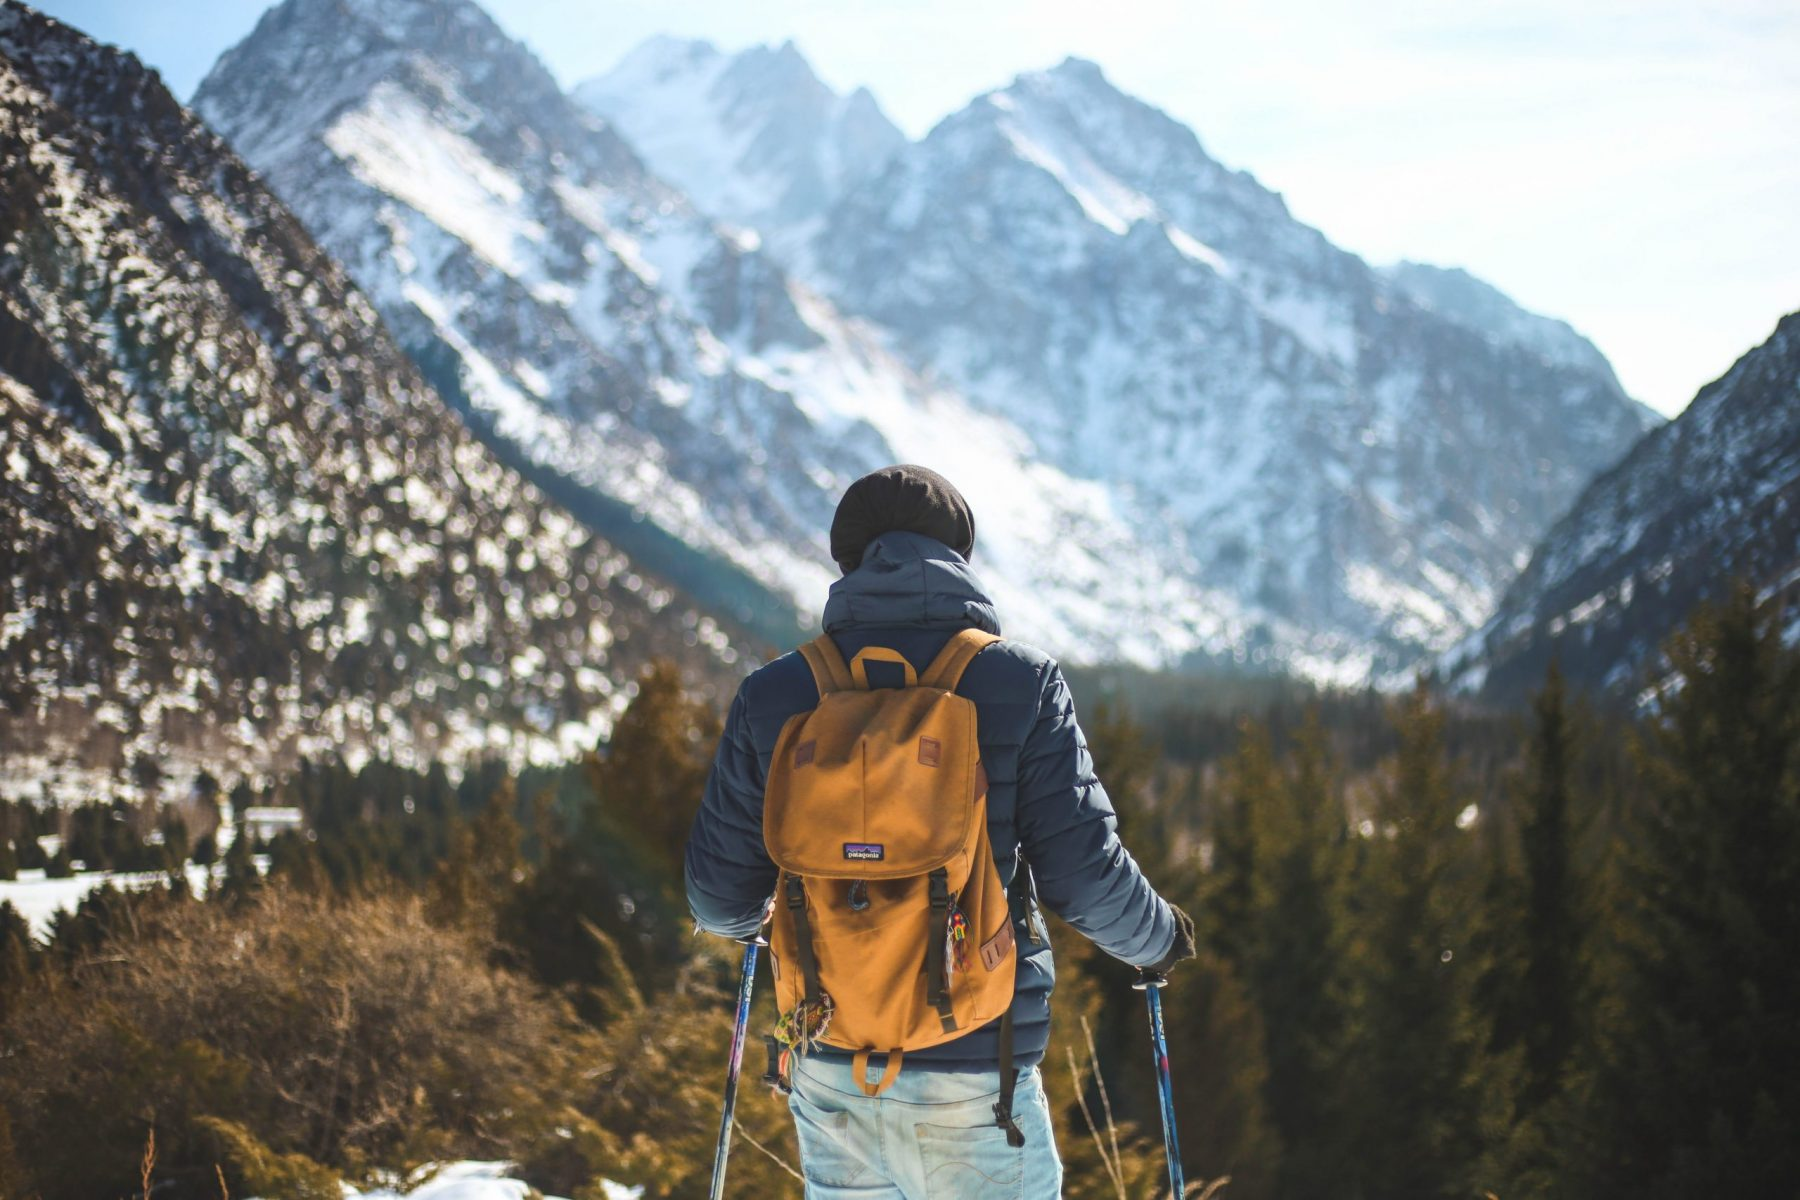 What Does Hiking Do For Your Body Composition?